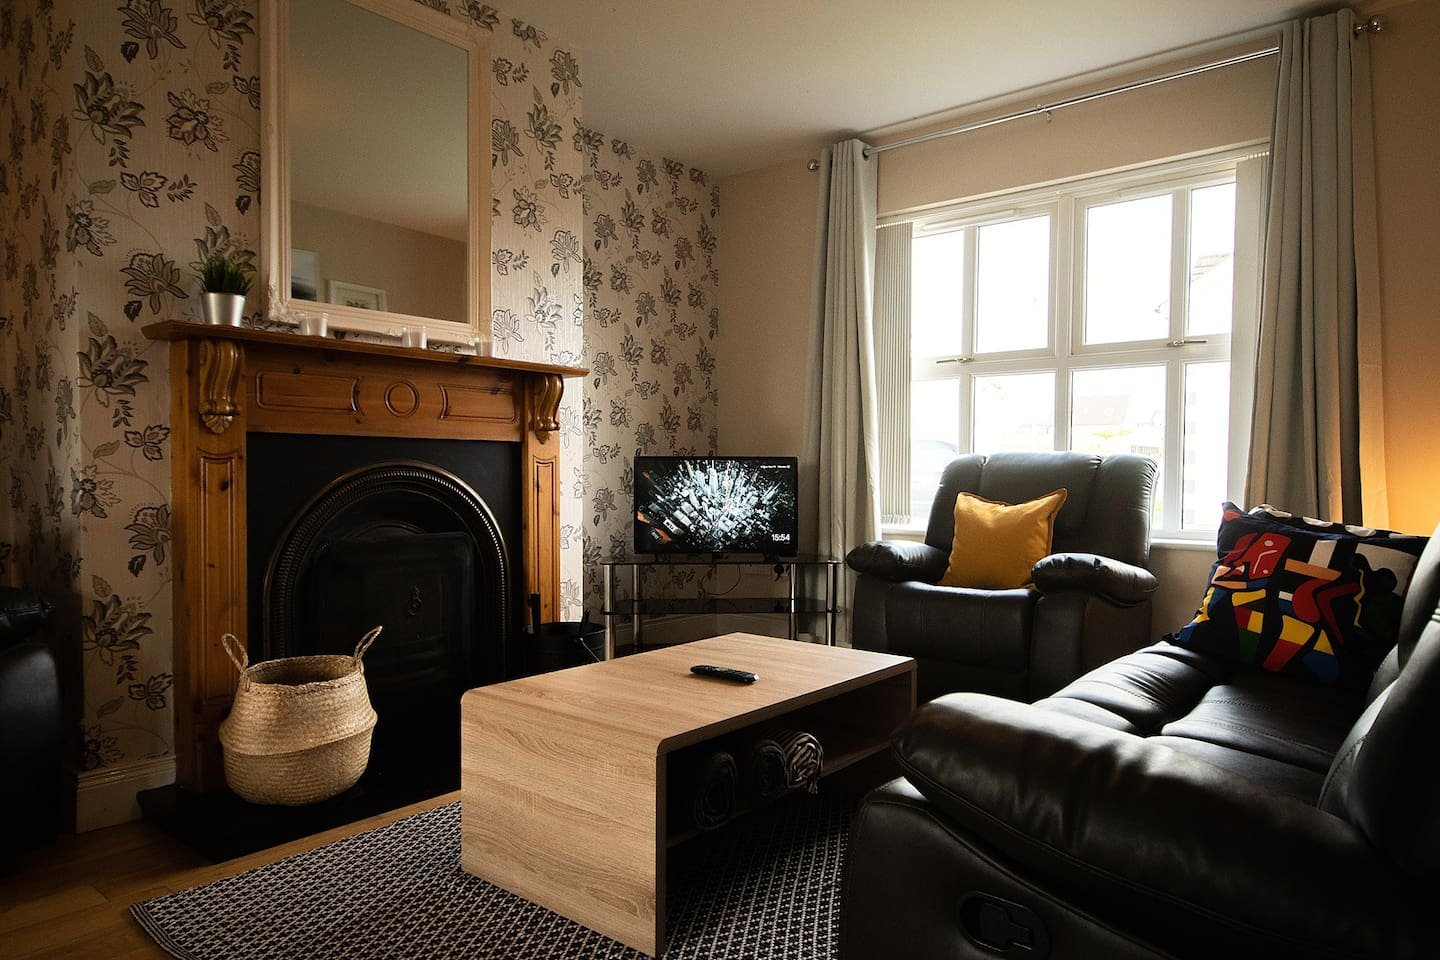 The lounge has two double seat sofas and a single seat.  The fireplace is great for winter nights, and wifi and a chrome cast so you can cast your netflix, youtube and spotify.